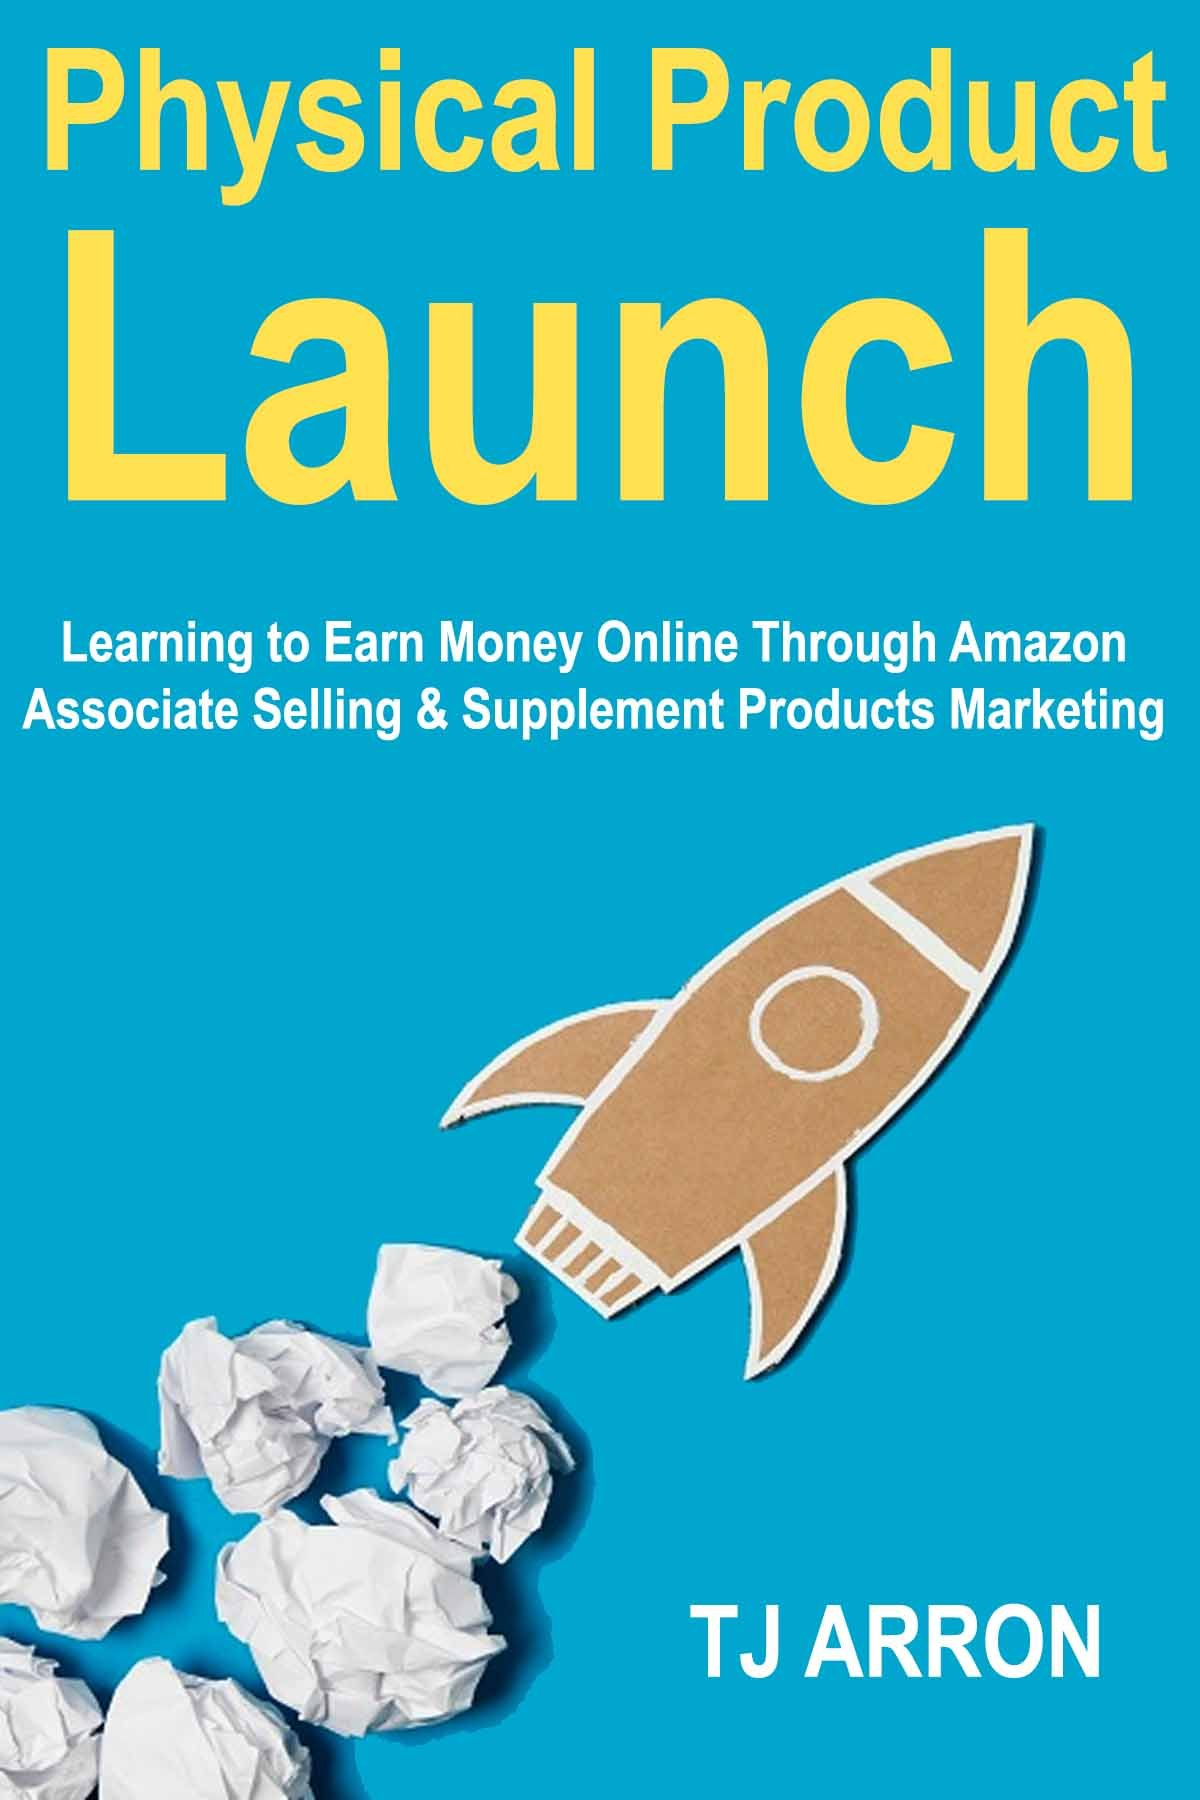 Physical Product Launch: Learning to Earn Money Online Through Amazon Associate Selling & Supplement Products Marketing